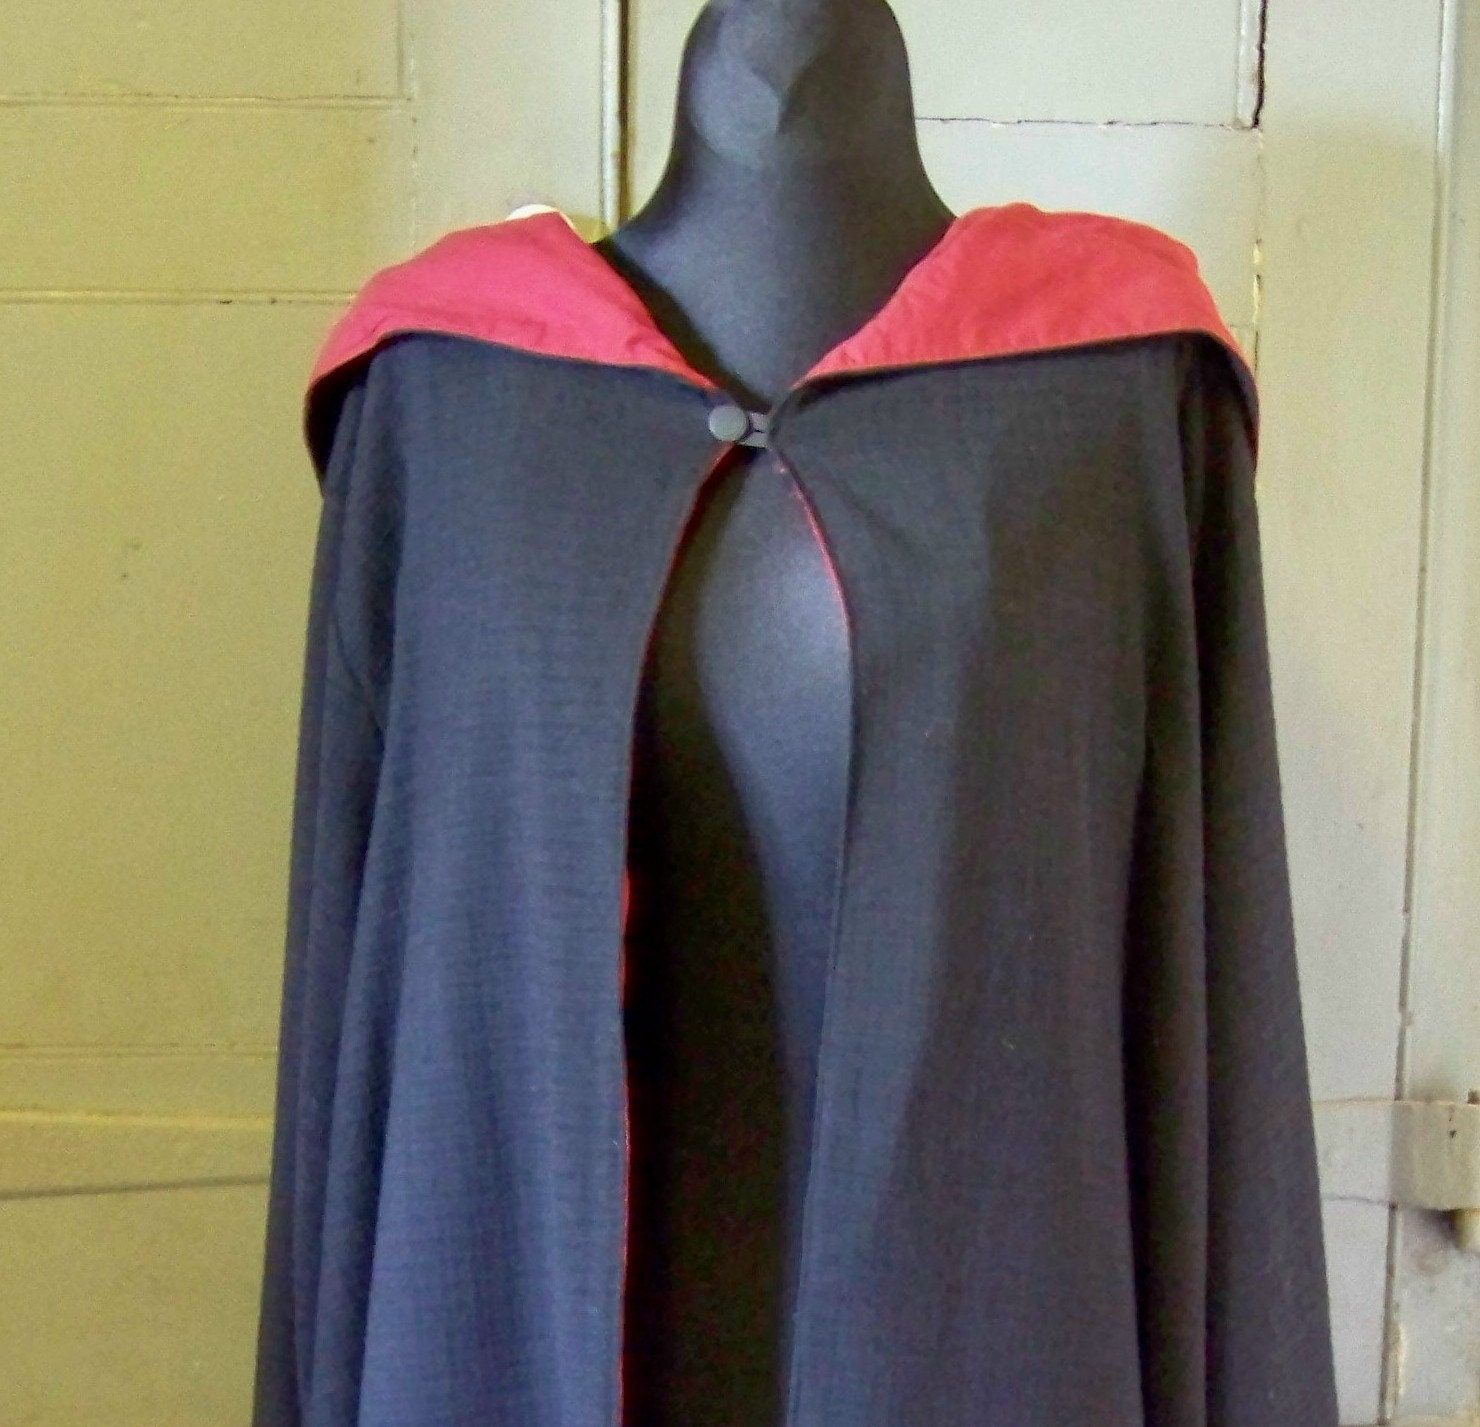 Robe And Wizard Hat: Harry Potter Wizard Robe Gryffindor Black/Red Size S/M Small